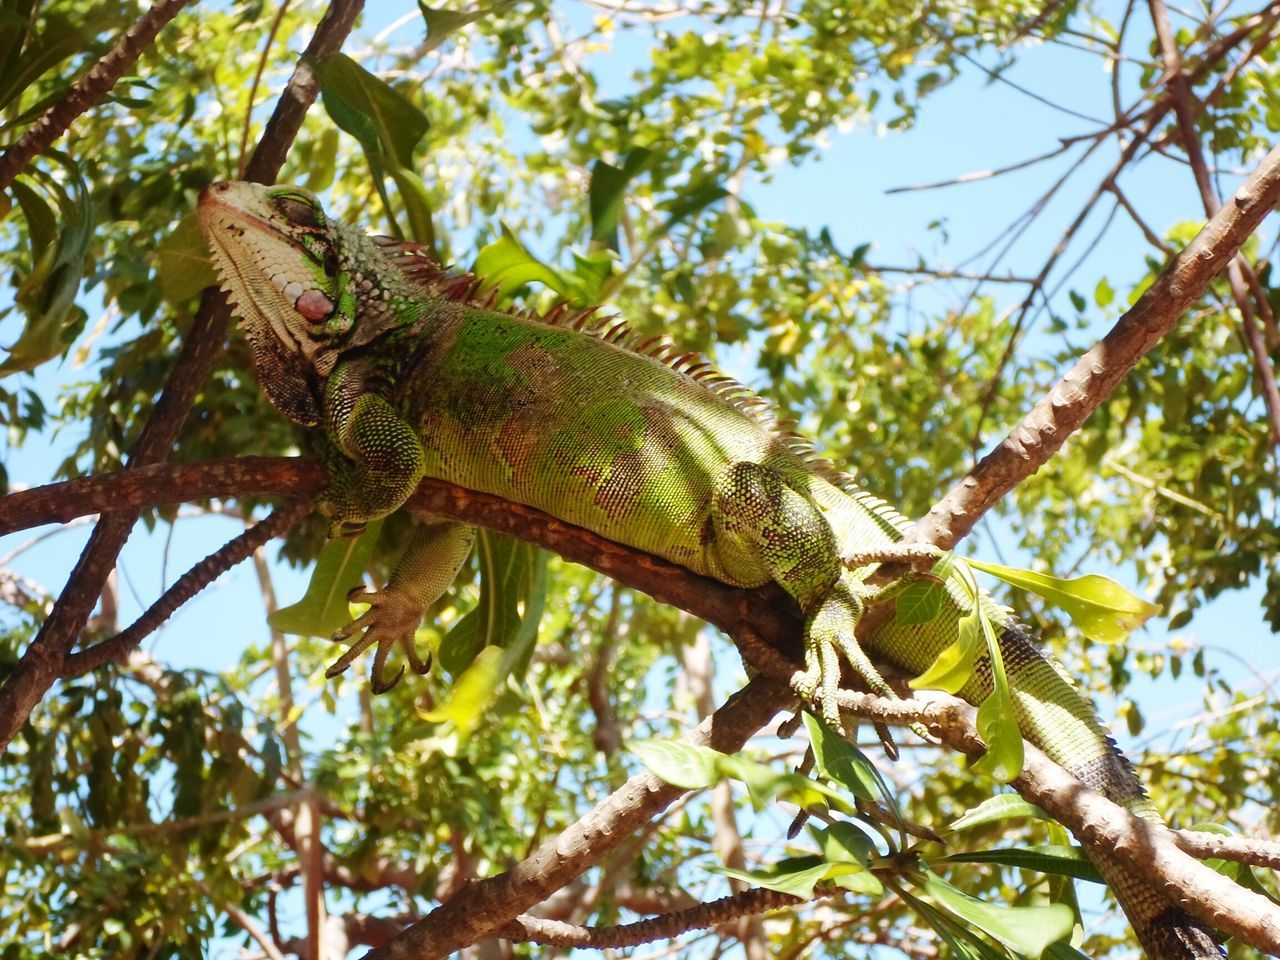 Low Angle View Tree One Animal Branch Reptile Lizard Green ColorPhotography Animal Wildlife Animals In The Wild Chameleon Animal Themes Nature No People Outdoors Day Sky Nature Beauty In Nature Eyemmarket Close-up Green Color Scenics